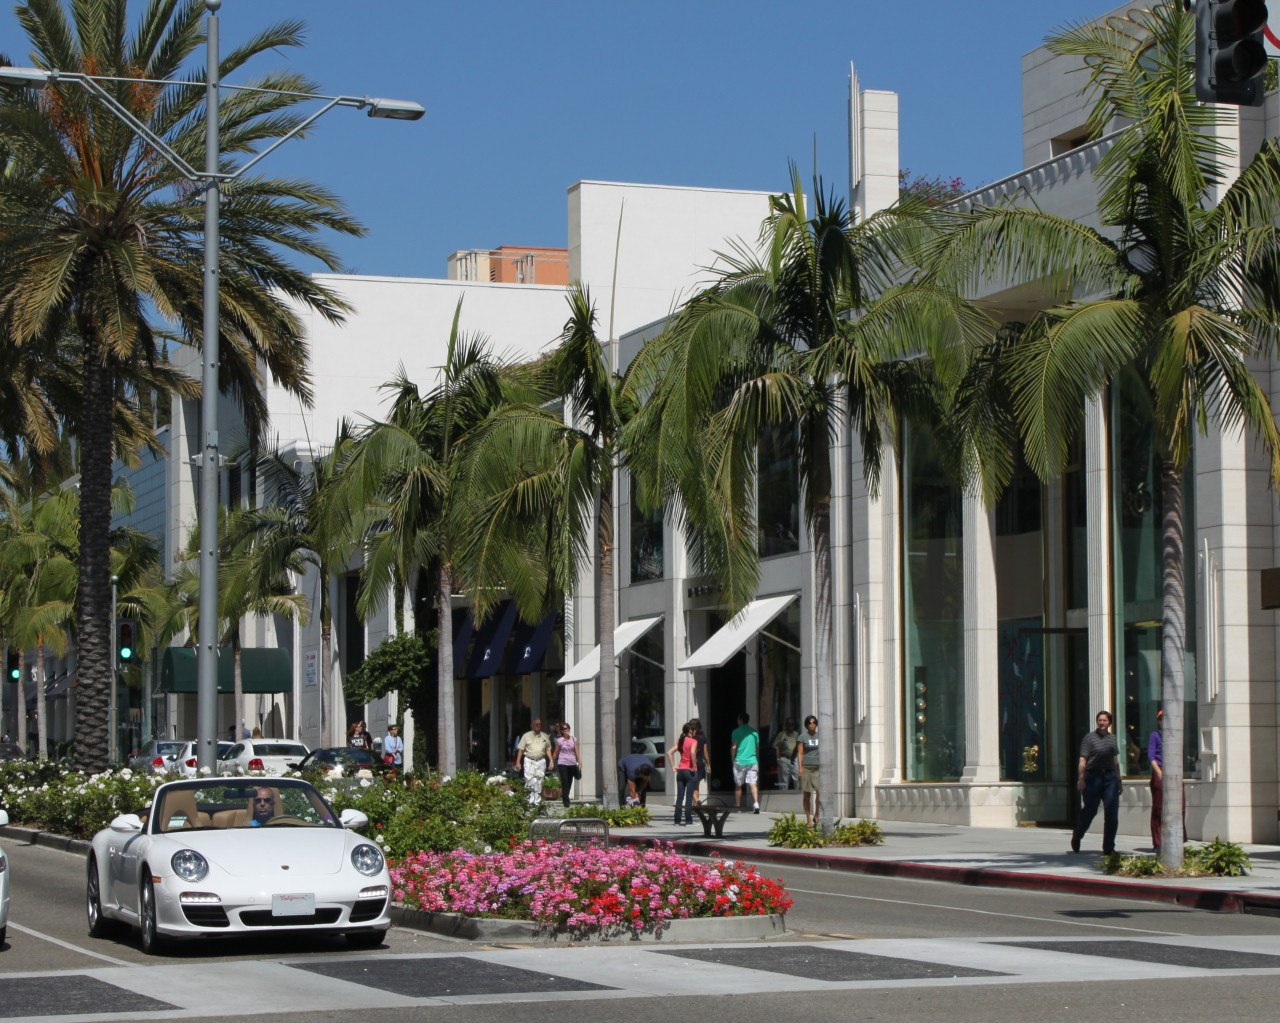 A glimpse into Rodeo Drive, Beverly Hills